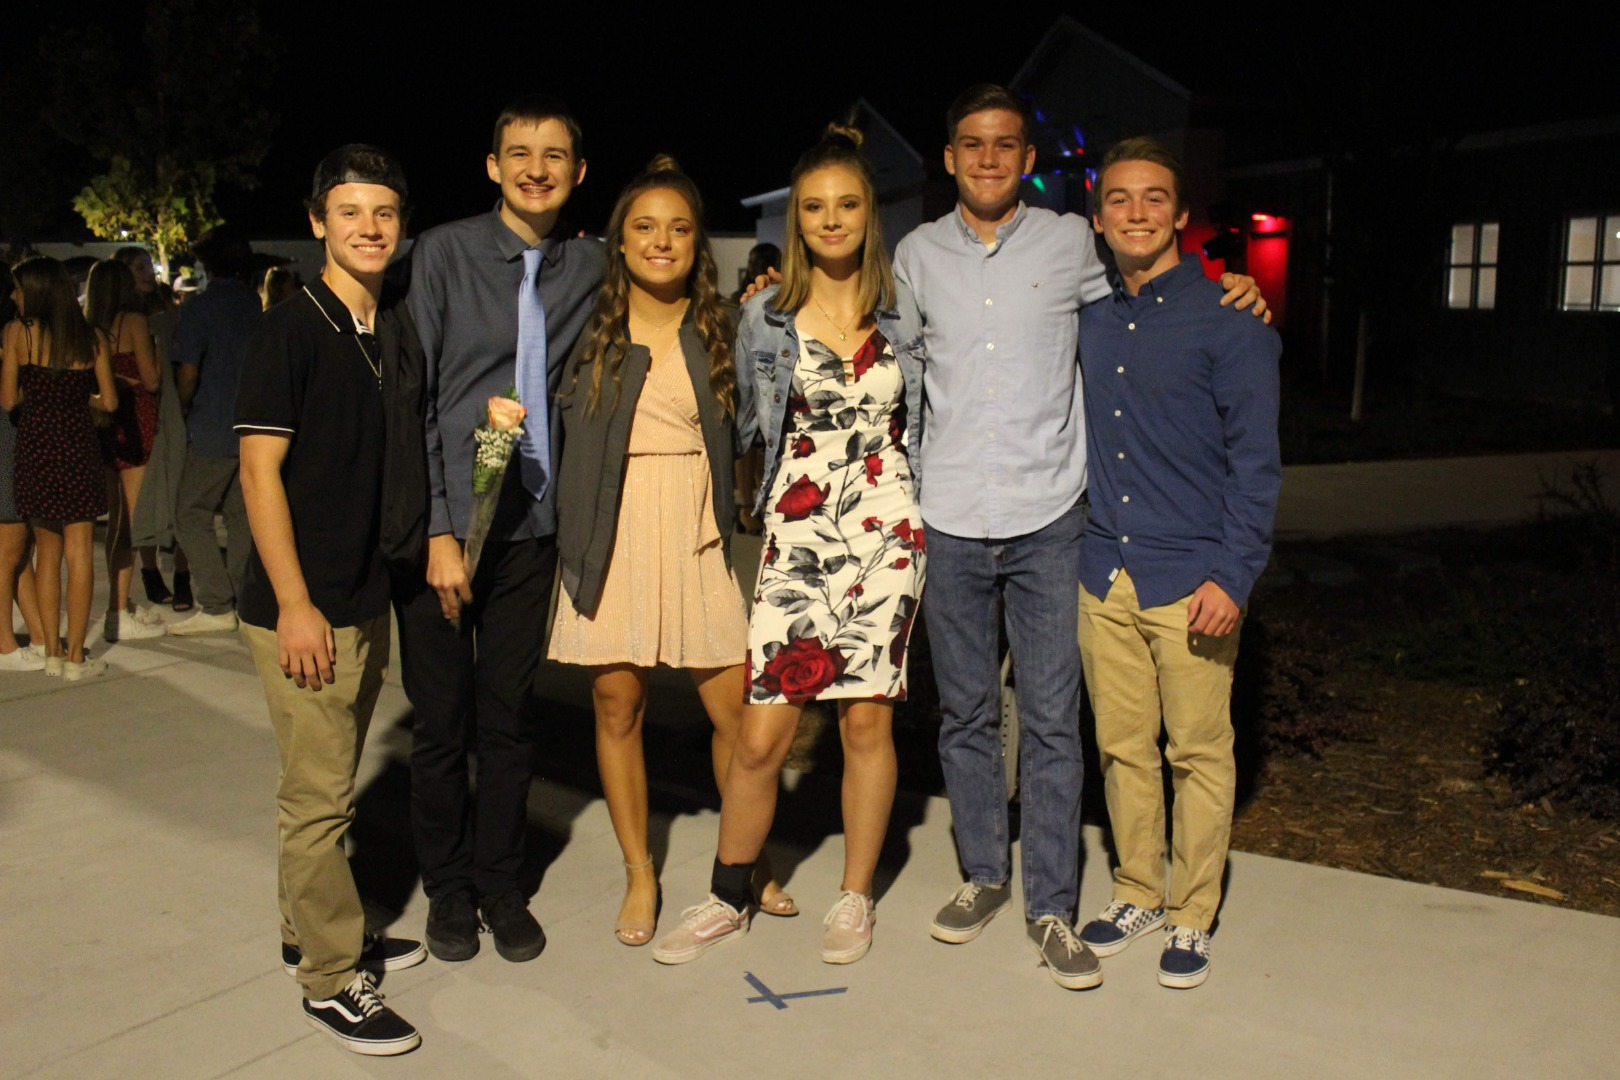 Six students at the homecoming dance